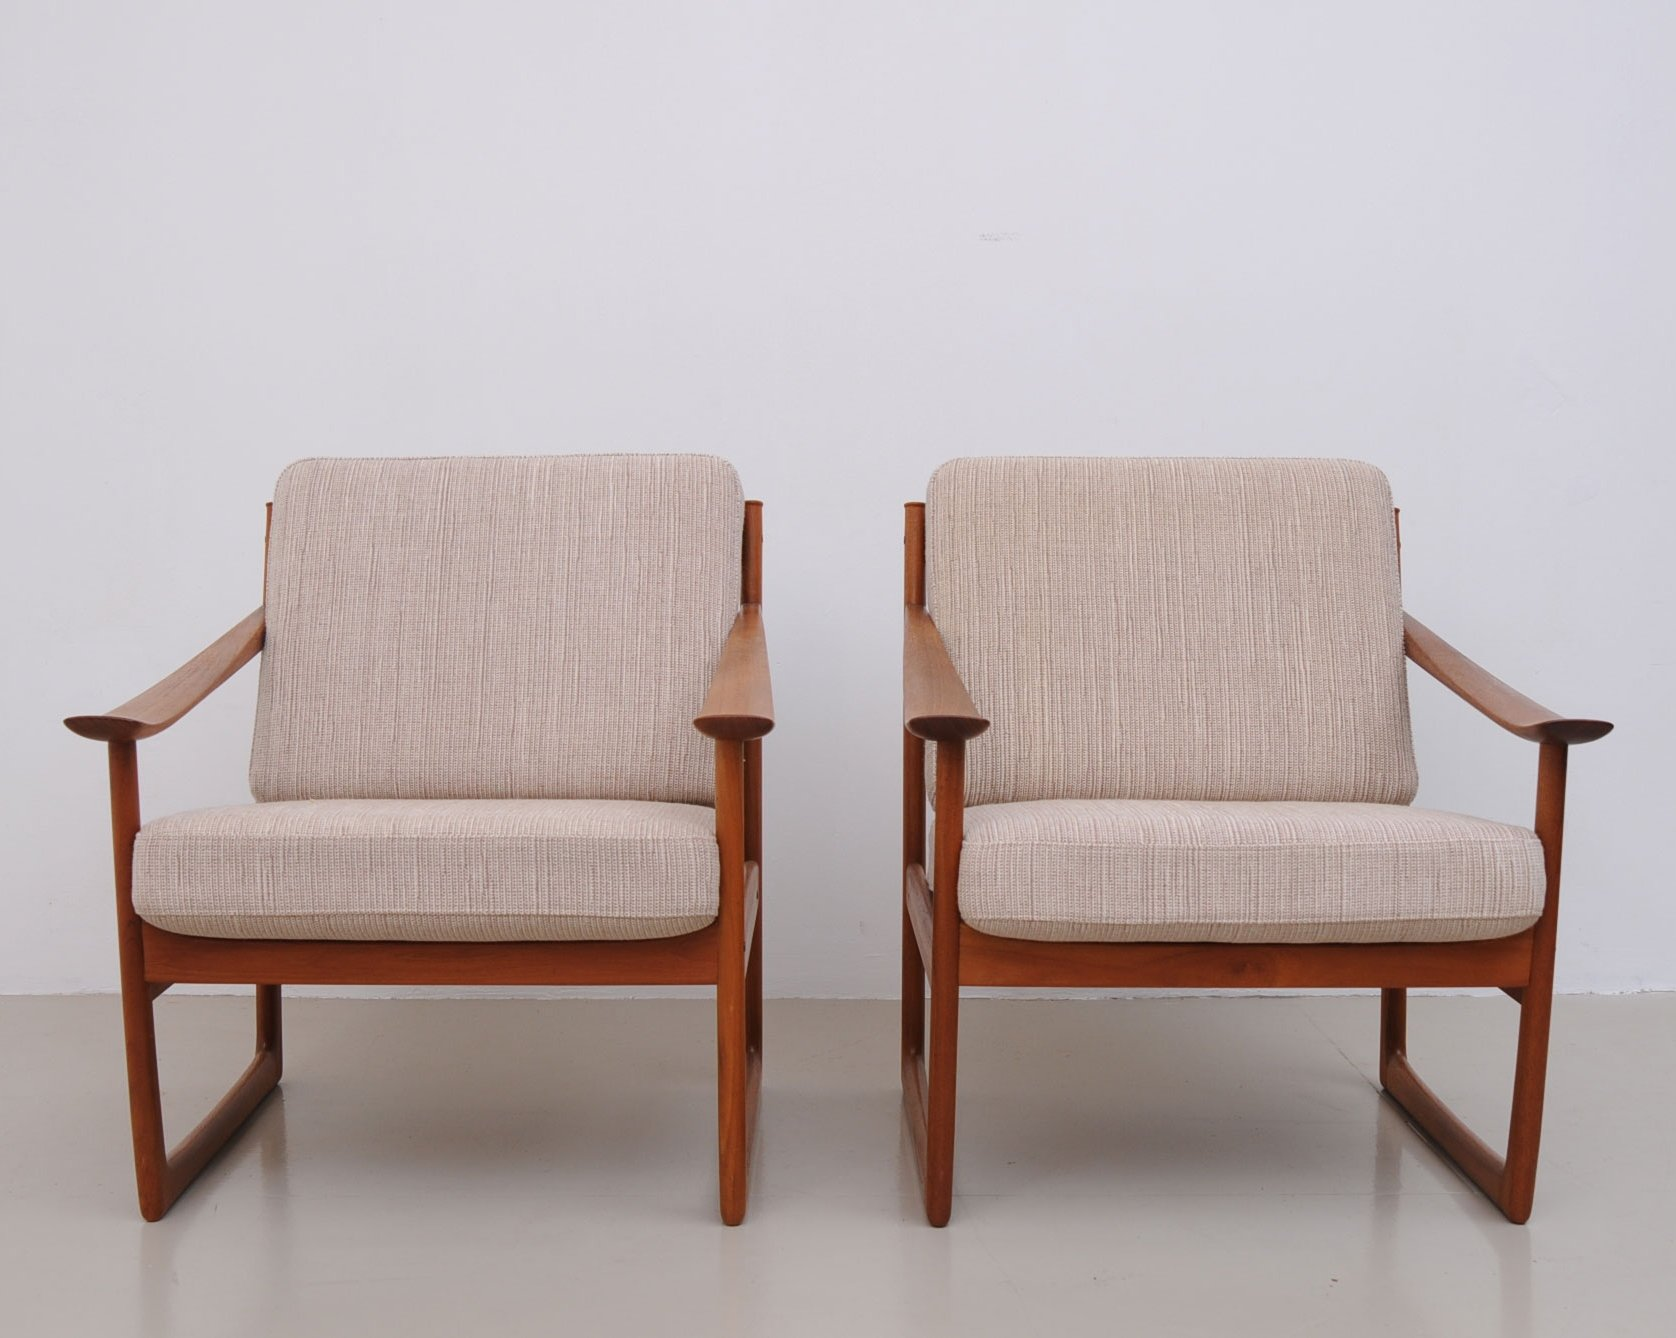 Pair Of Lounge Chairs By Peter Hvidt U0026 Orla Mølgaard Nielsen For France U0026  Son, 1950s